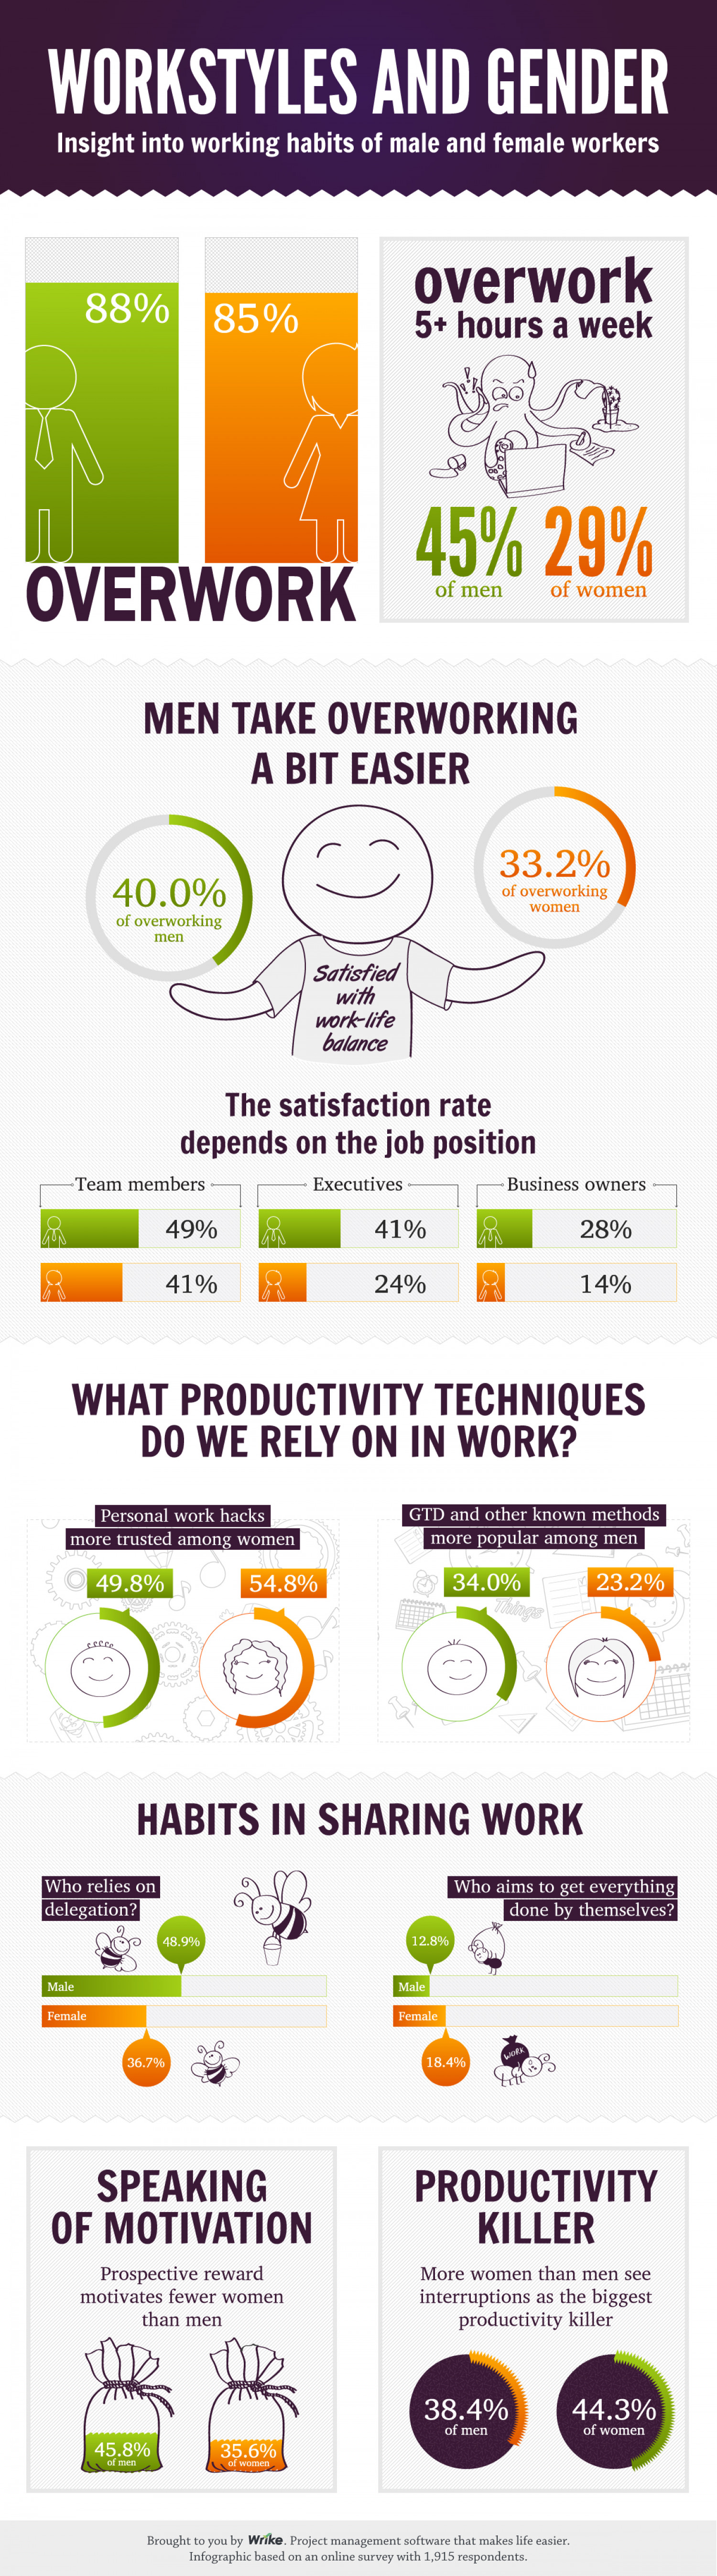 Who Works More? The Secrets of Male and Female Working Habits Infographic